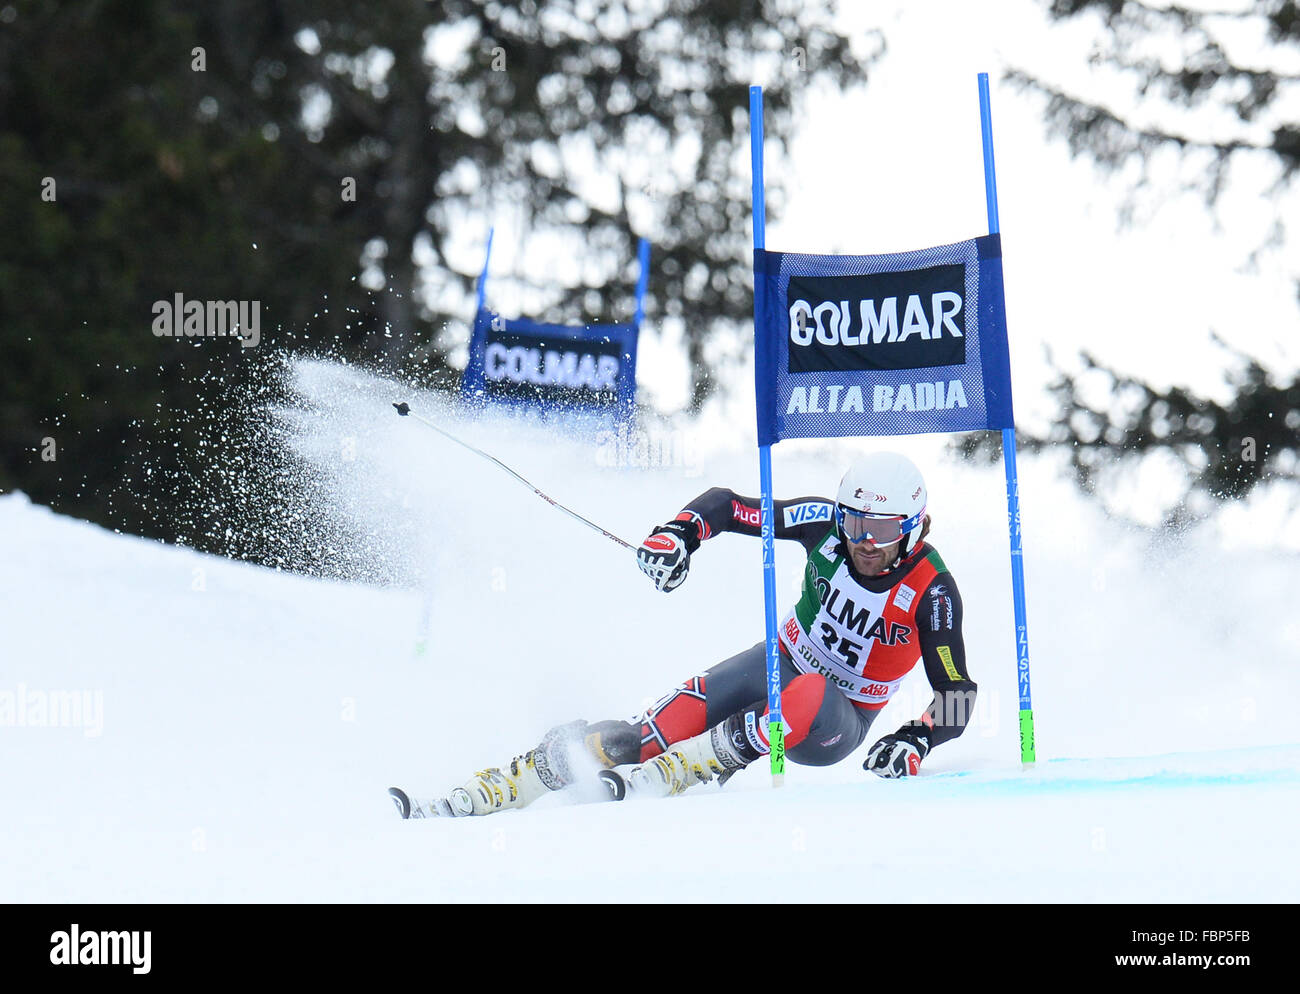 ALTA BADIA, ITALY - DECEMBER 22 2013: Competing in the AUDI FIS Alpine World Cup giant Slalom race on the Grand Stock Photo